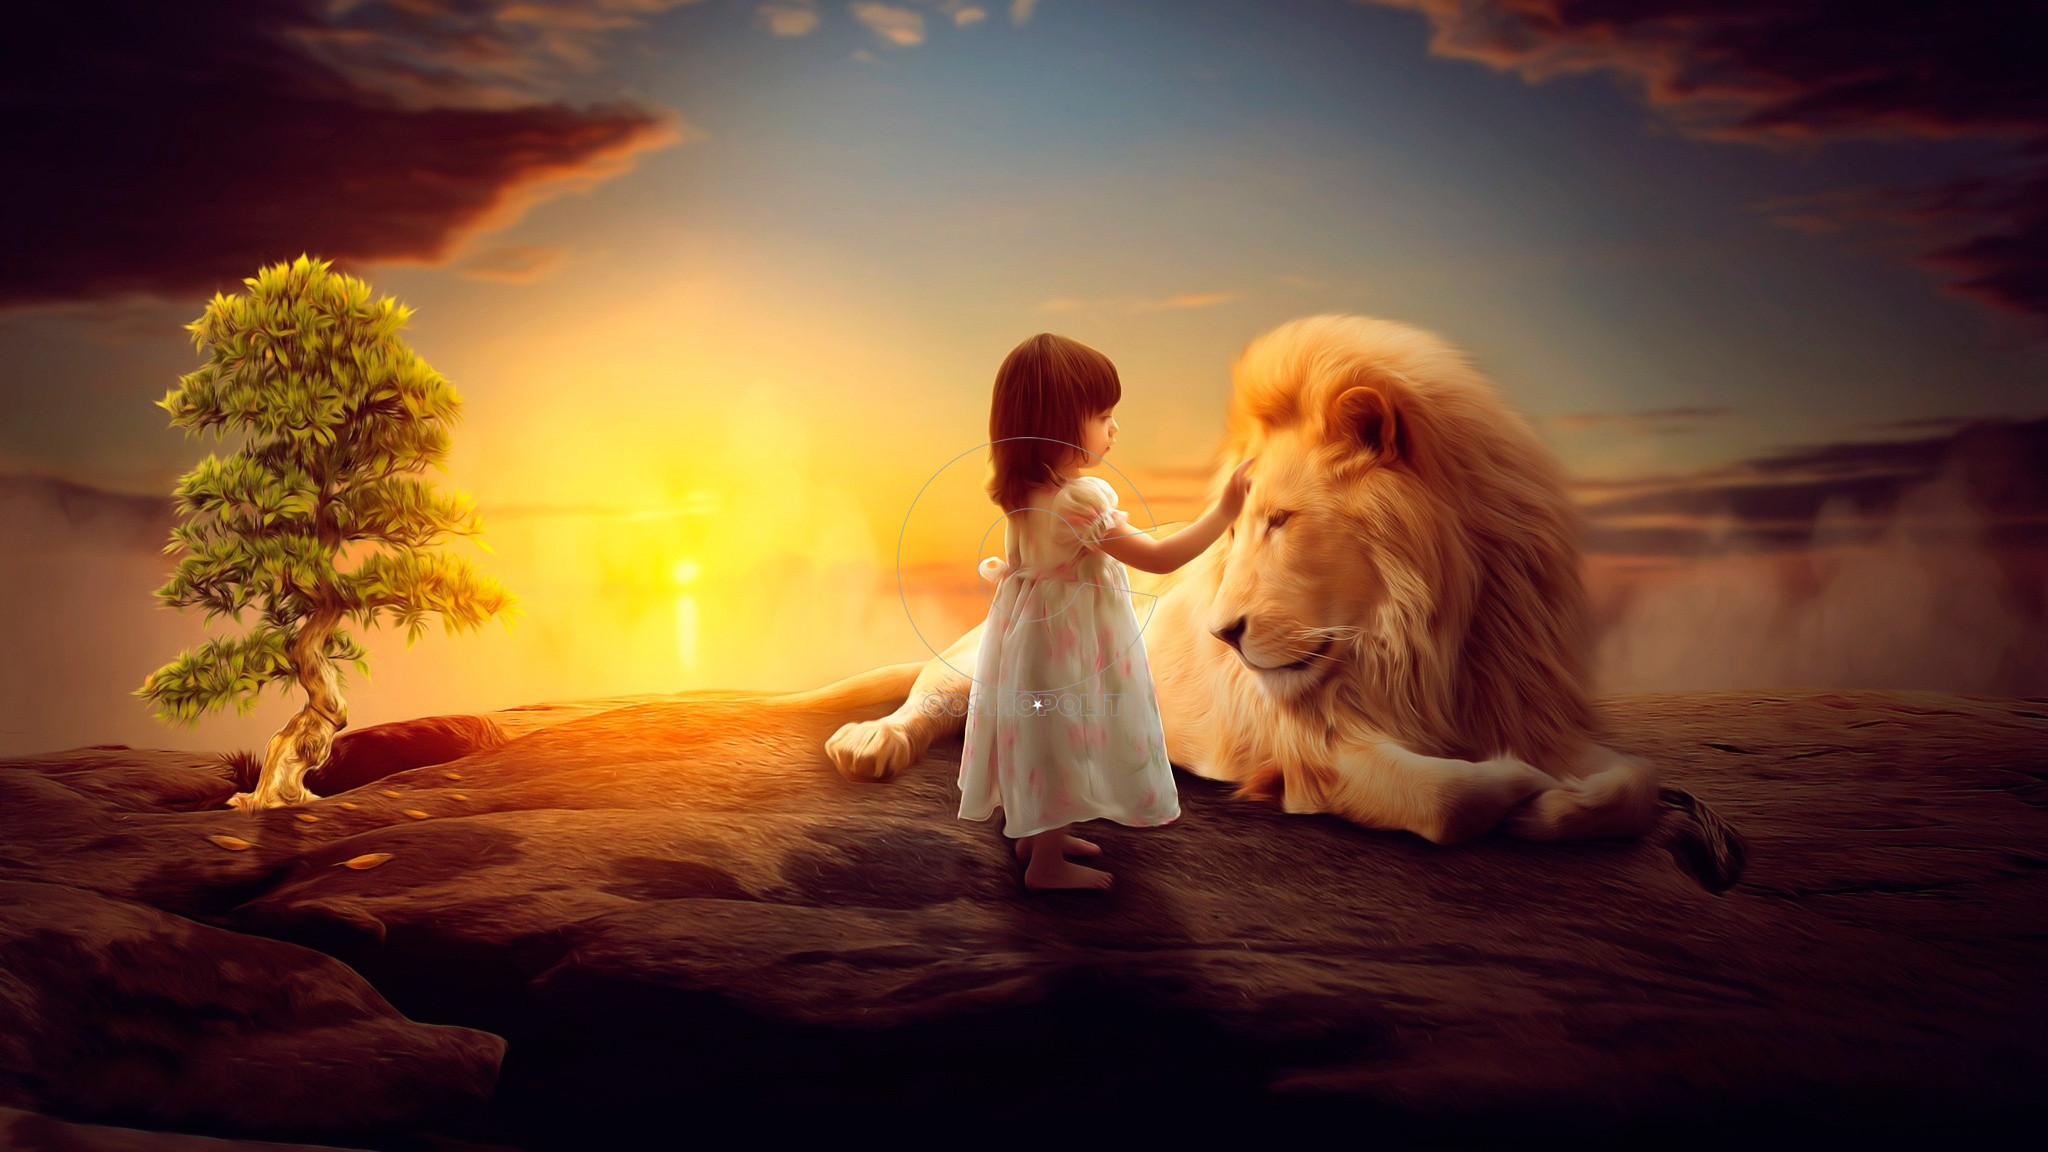 a_girl_lions_imagination-2048x1152